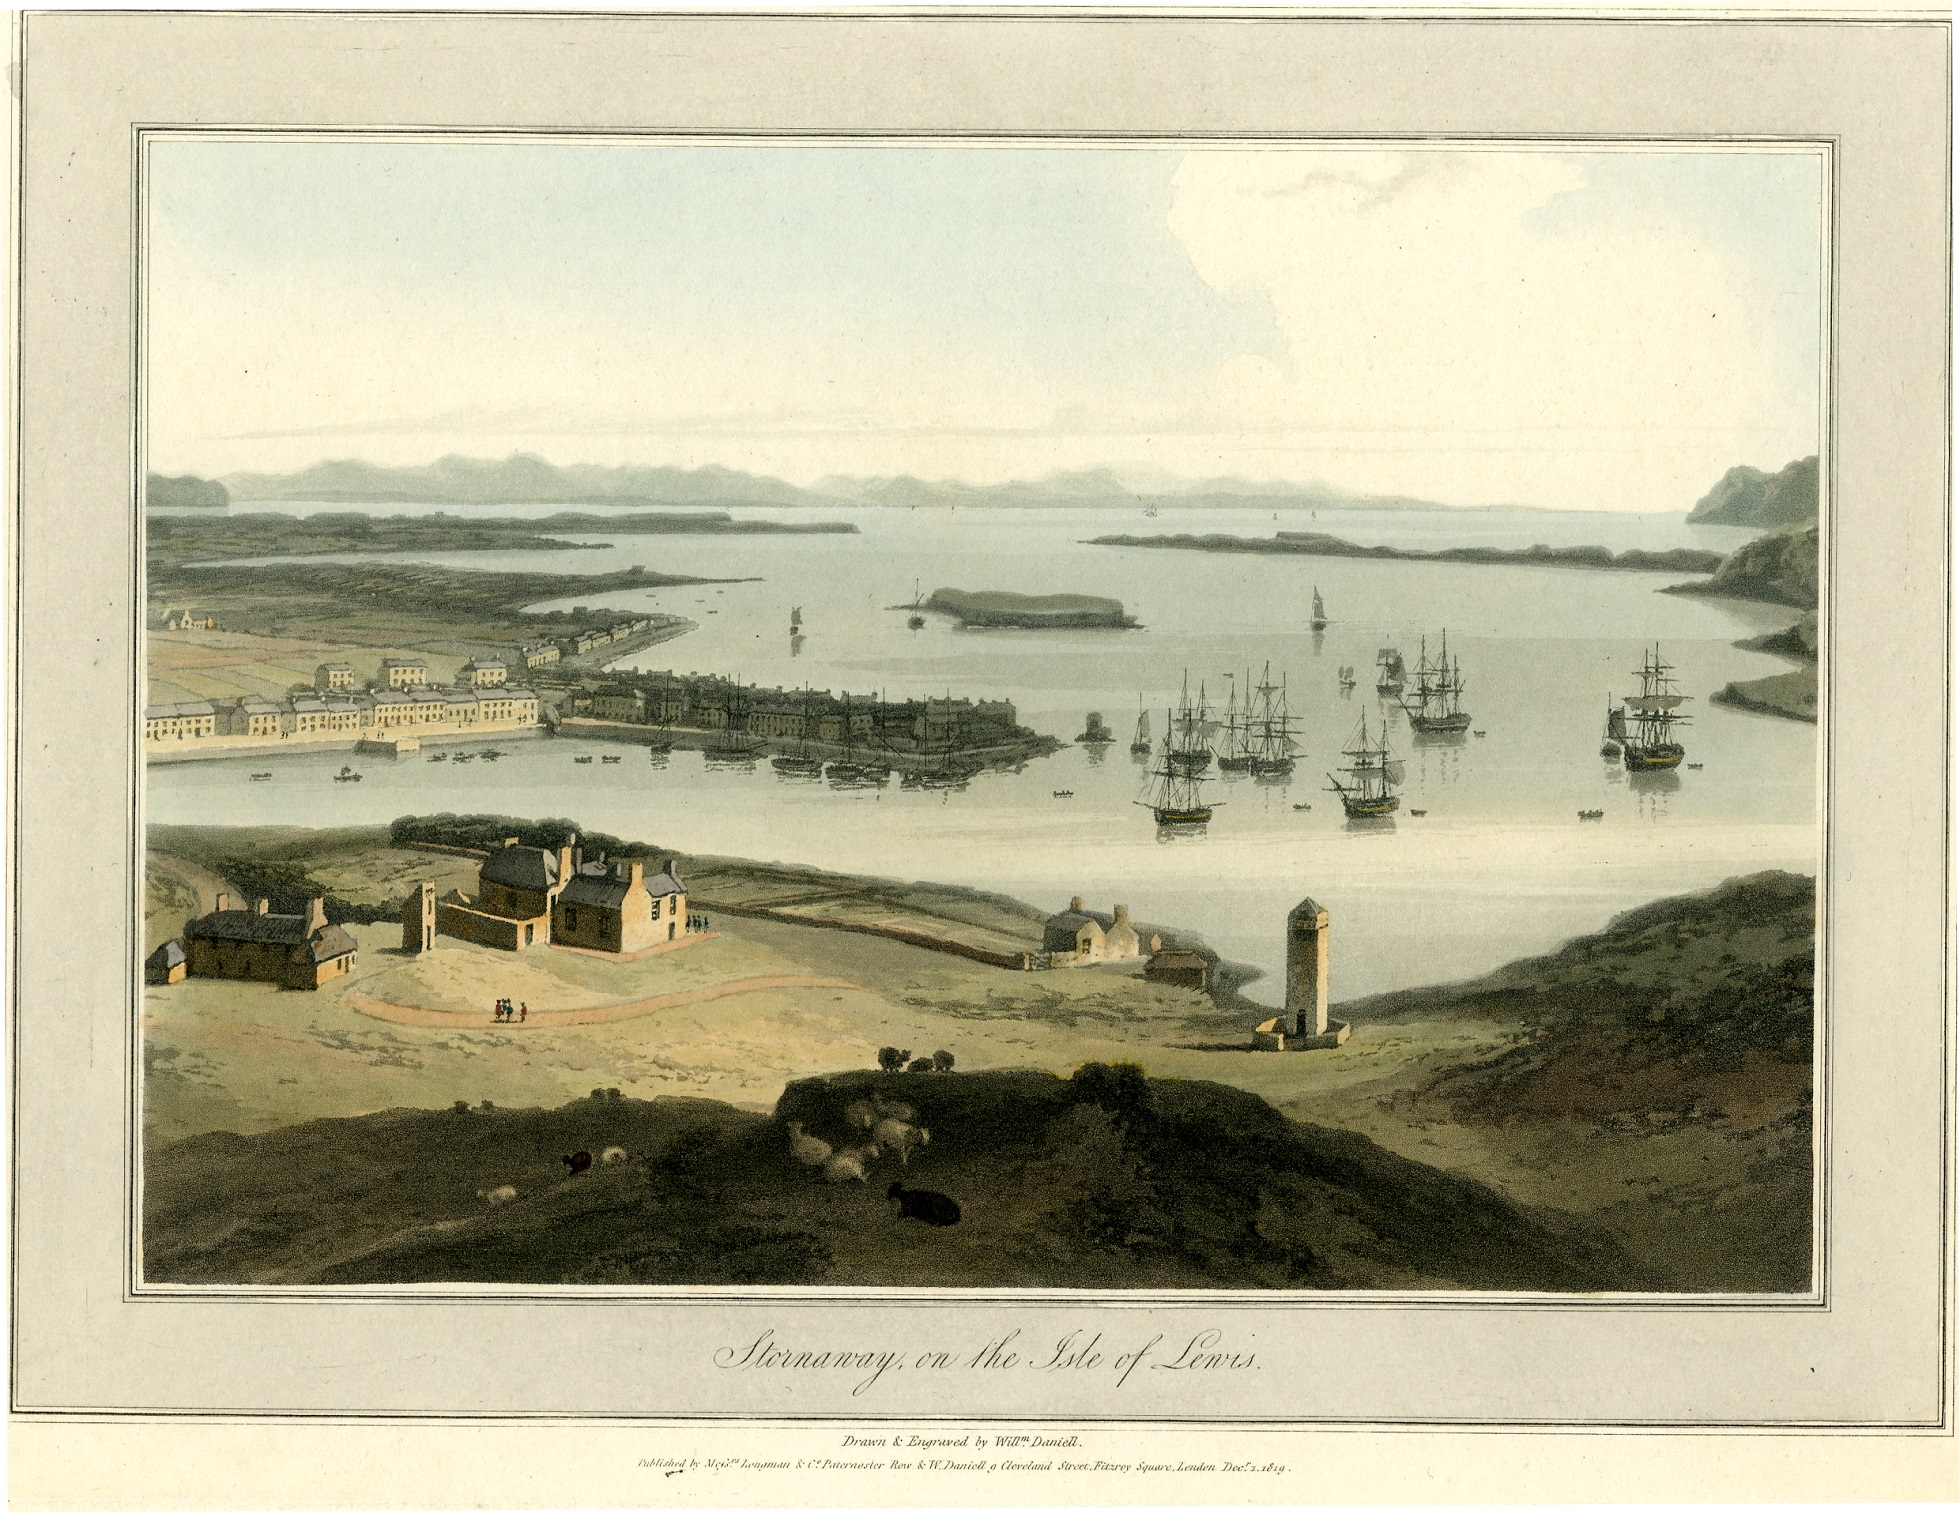 View of Stornaway bay on the Isle of Lewis from a high vantage point, with boats moored up and a few buildings in the foreground. Aquatint and coloured etching on paper.